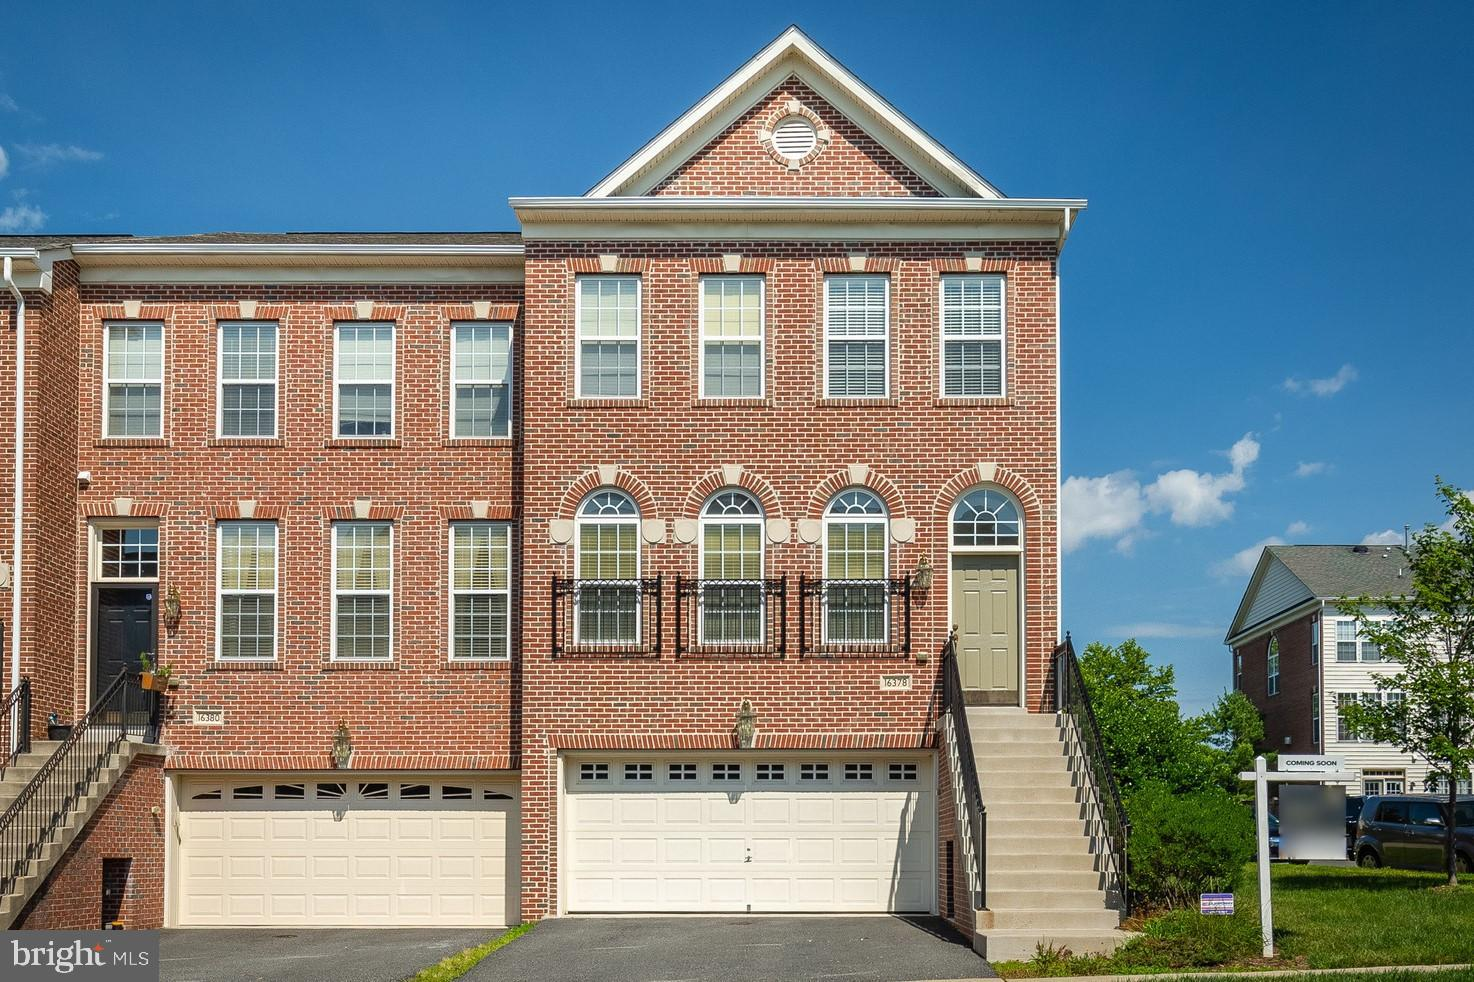 PRISTINE THREE-LEVEL END UNIT READY FOR QUICK CLOSING**TWO-CAR GARAGE** BRICK FRONT AND SIDE**SPACIO